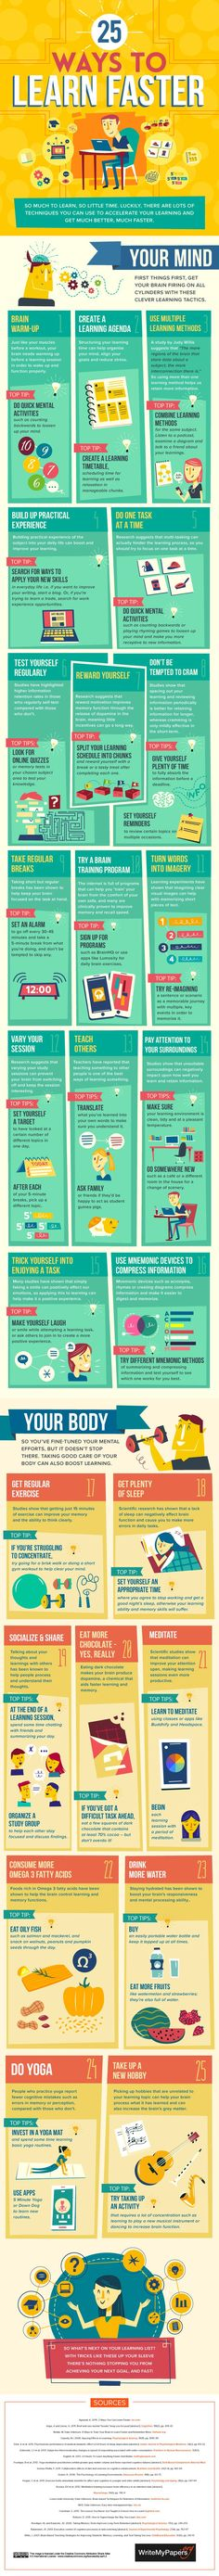 Ways to Learn Faster (Infographic) Try these tips to speed up your cognitive processes. MoreTry these tips to speed up your cognitive processes. Study Skills, Life Skills, Skills To Learn, Learn Faster, Educational Websites, Math Websites, Study Help, What To Study, Study Tips